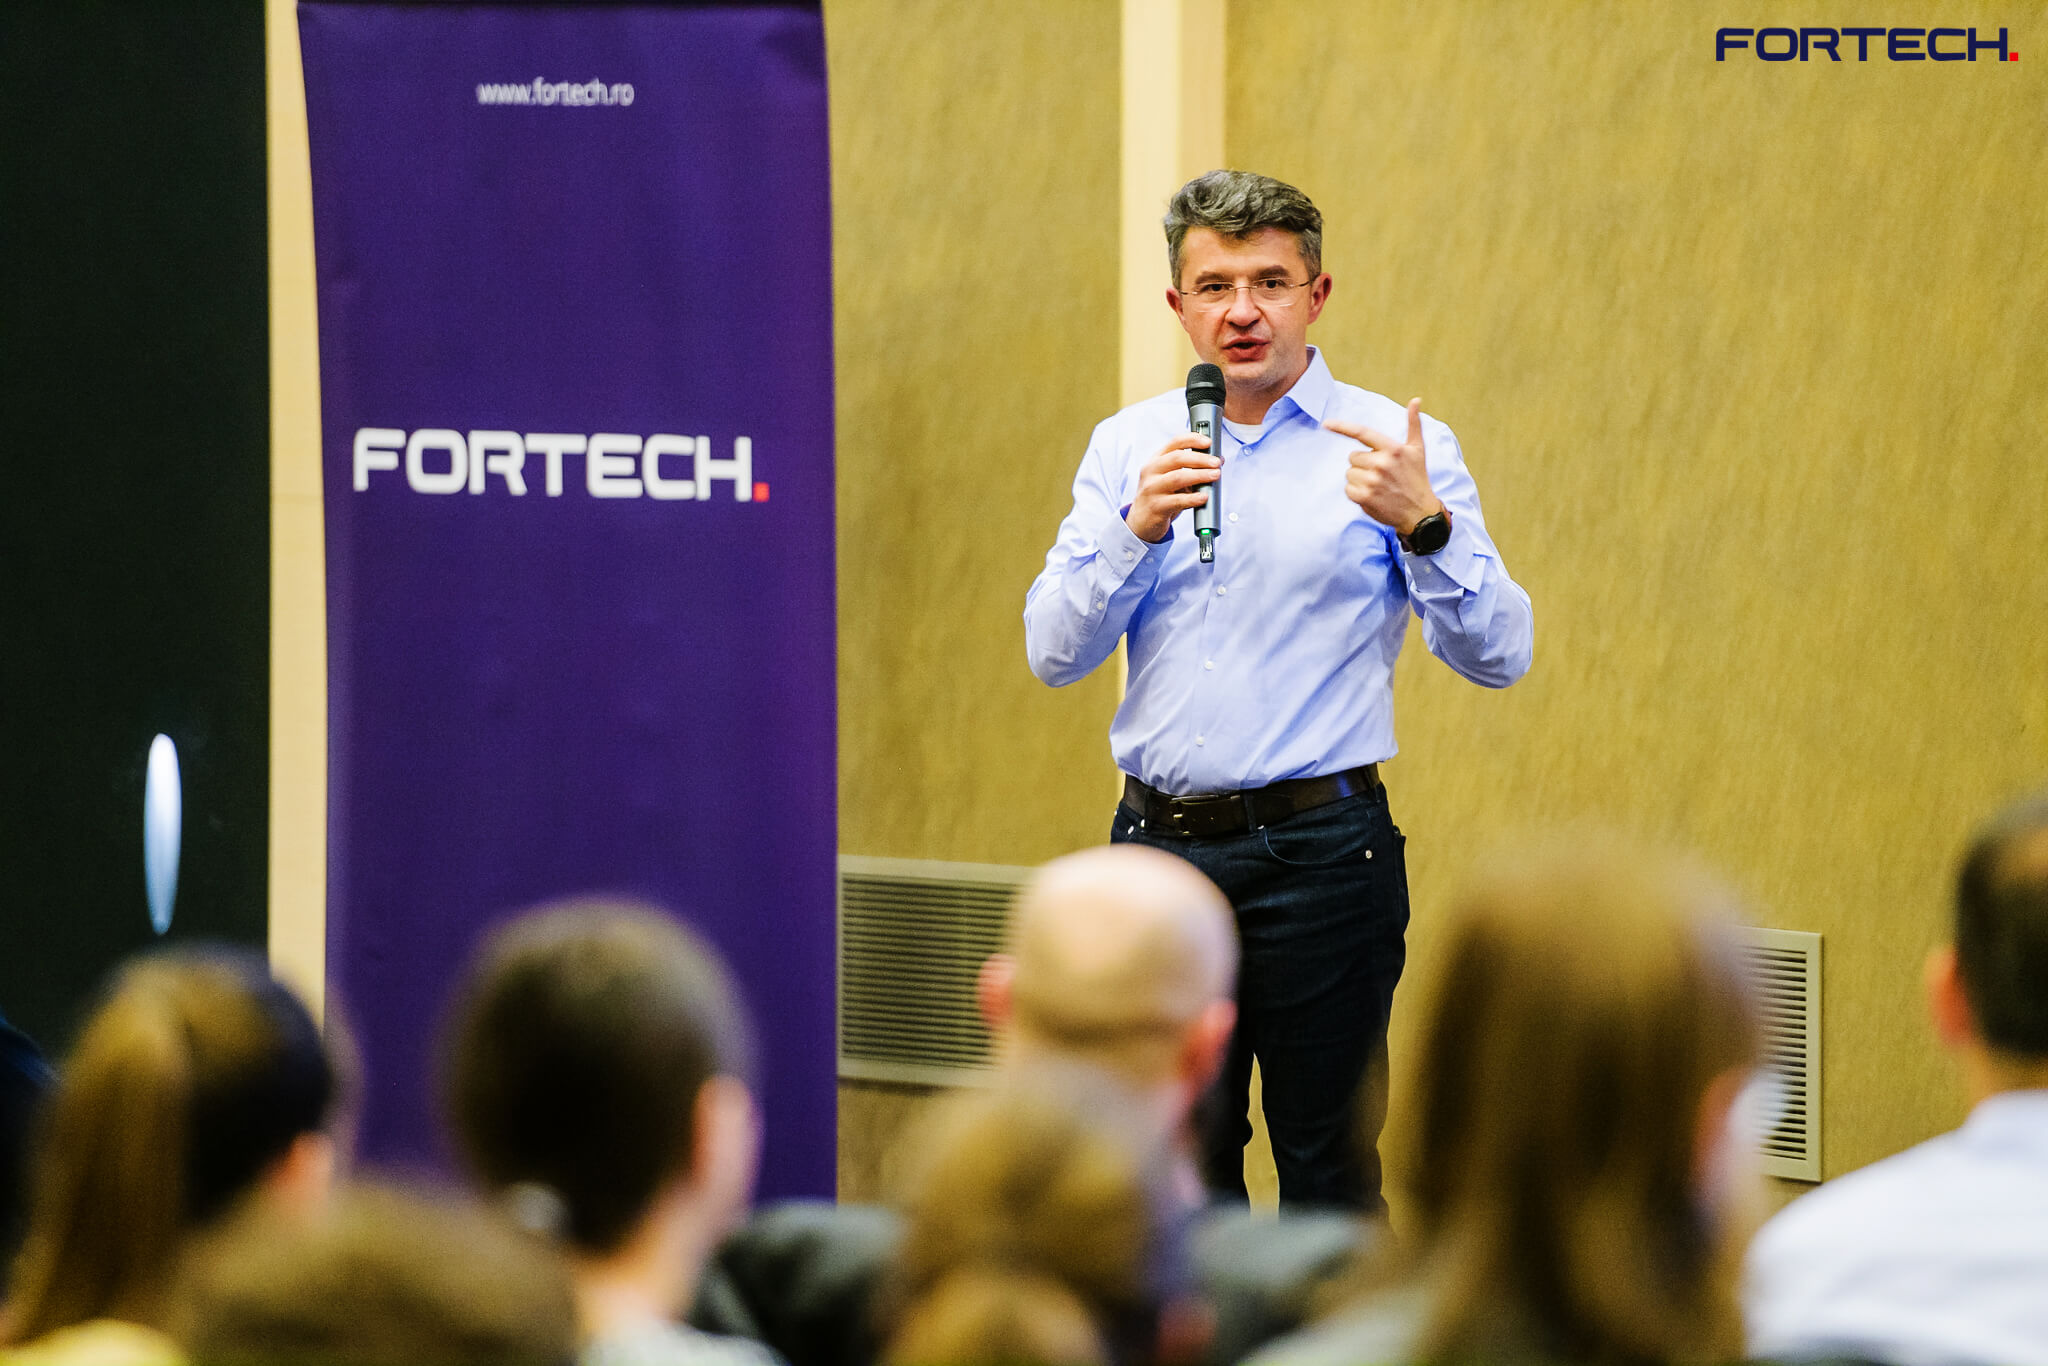 Calin Vaduva, Fortech CEO, Speaker at Techsylvania 2019